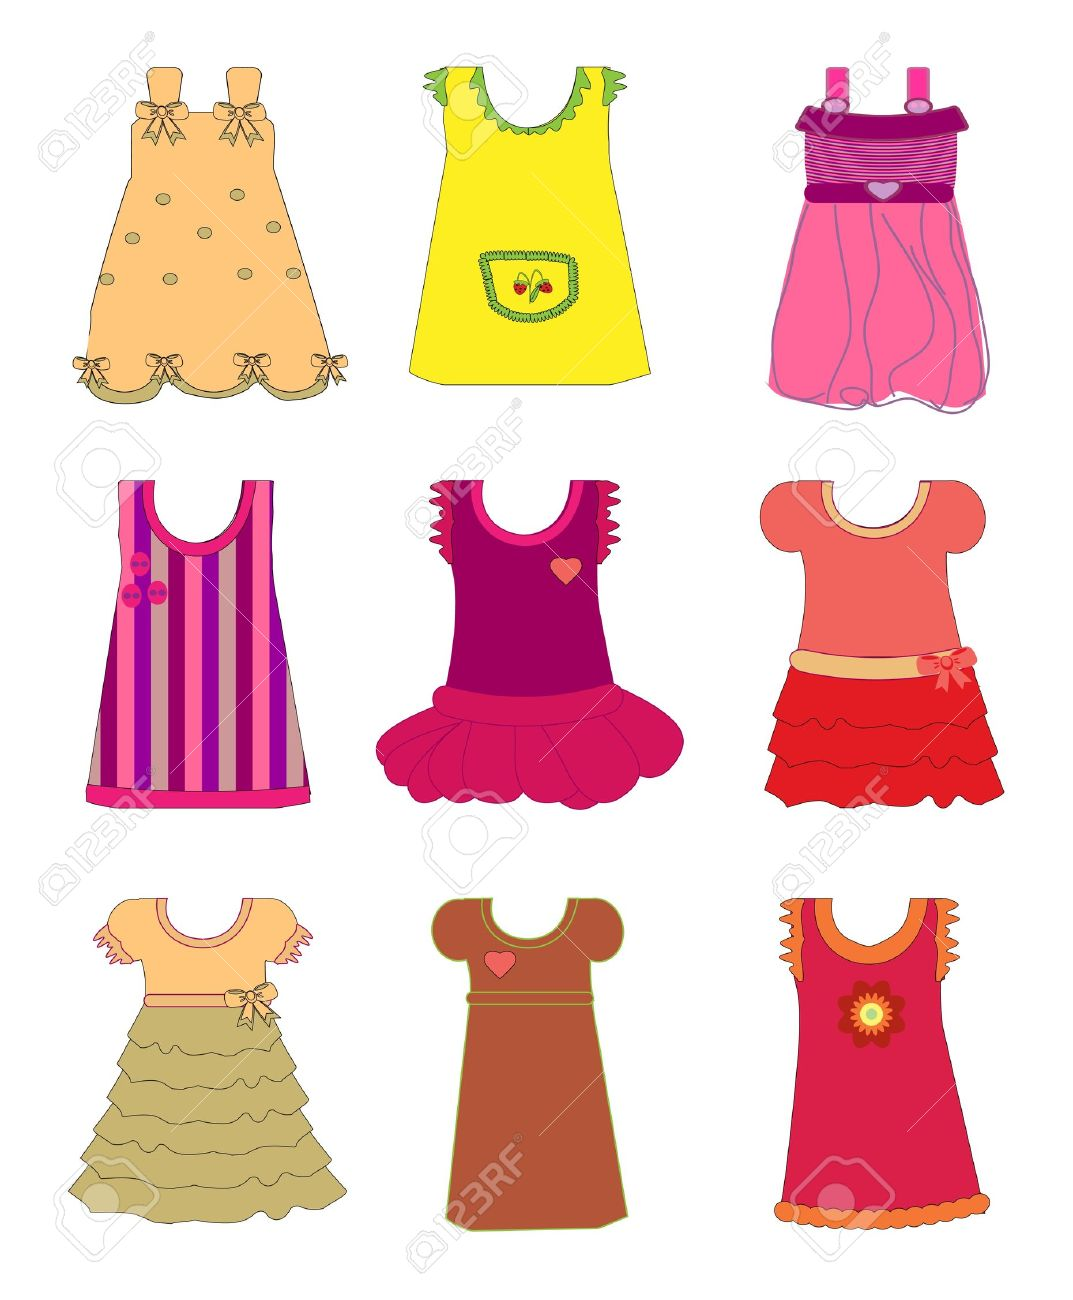 Baby Doll Dress Clipart.